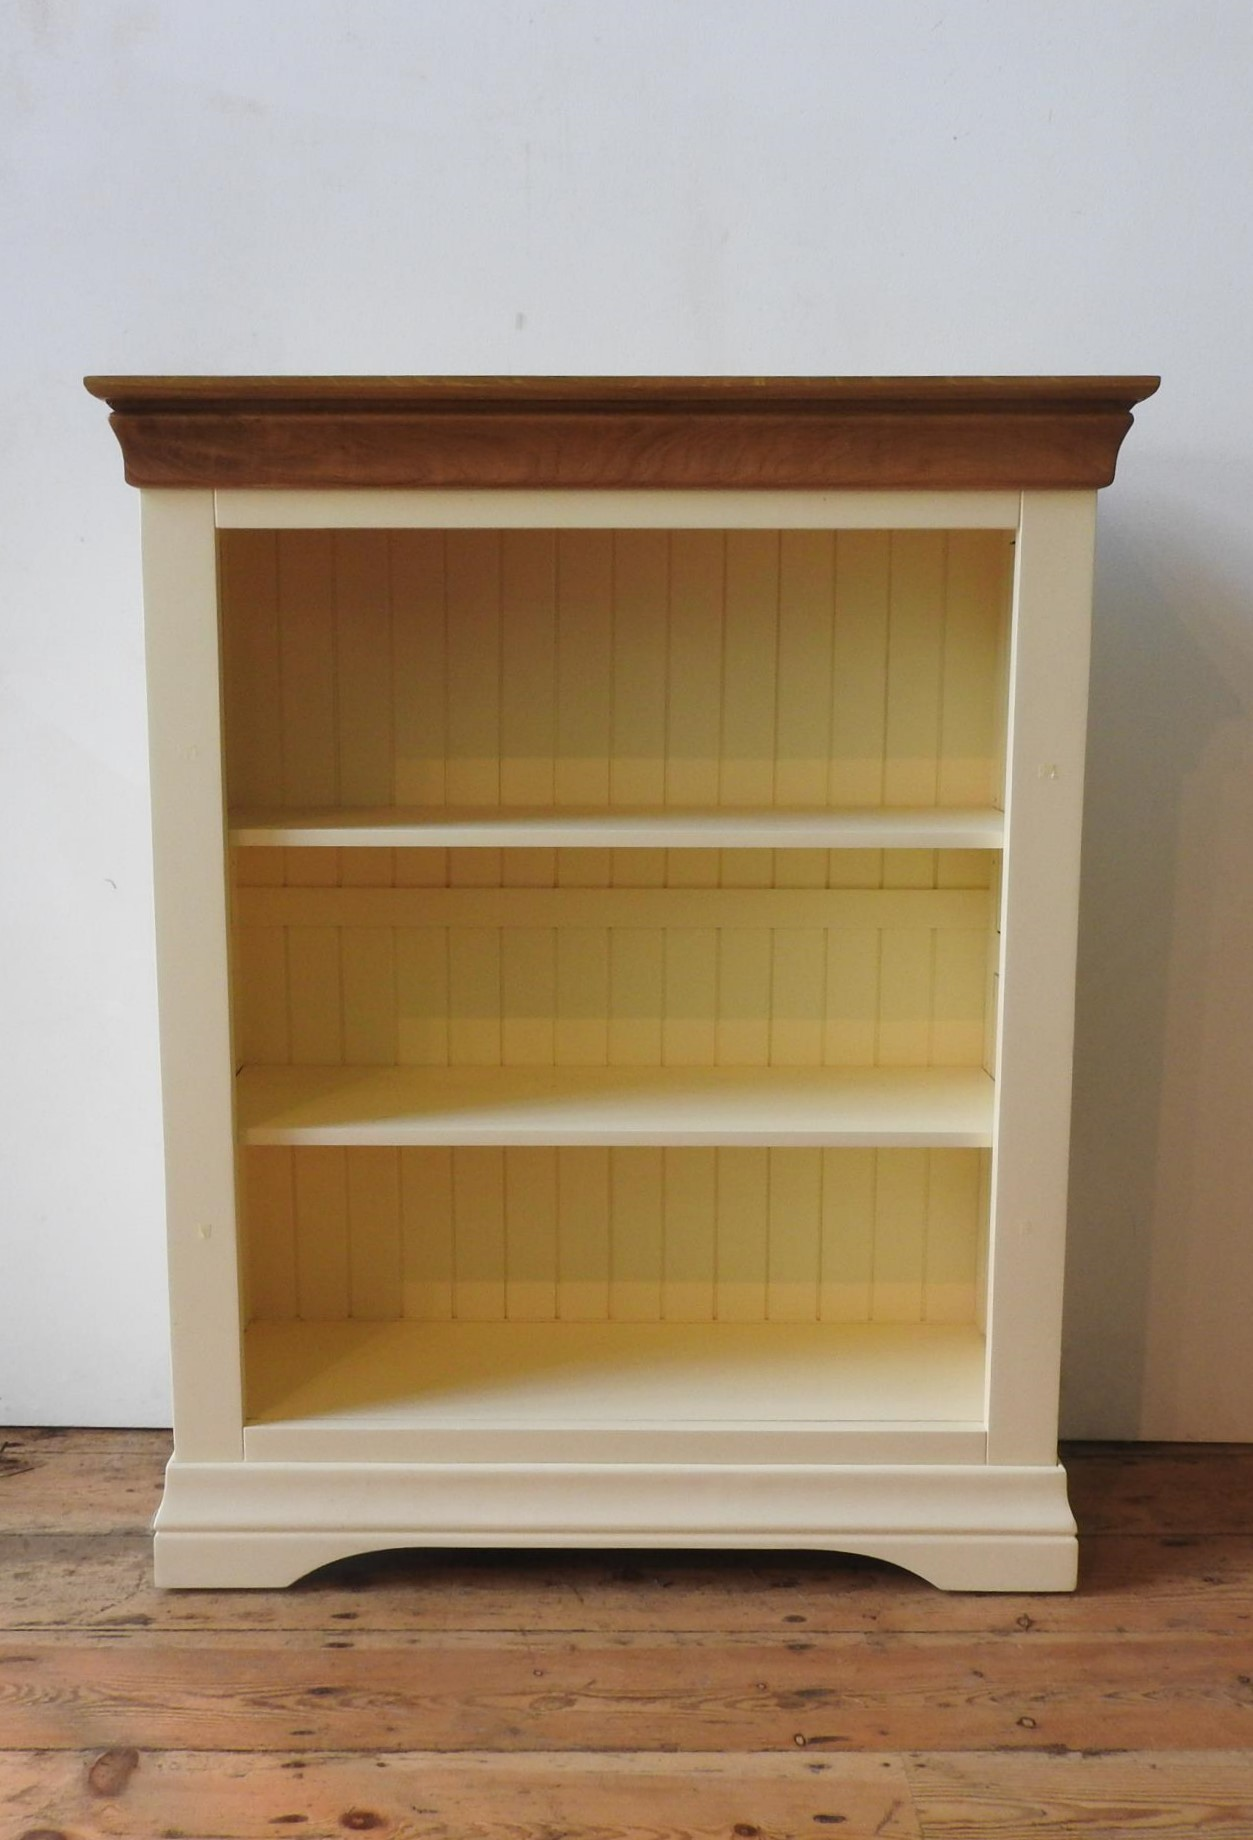 A CONTEMPORARY CREAM PAINTED ADJUSTABLE HARDWOOD BOOKCASE, 109 x 89 x 13 cm